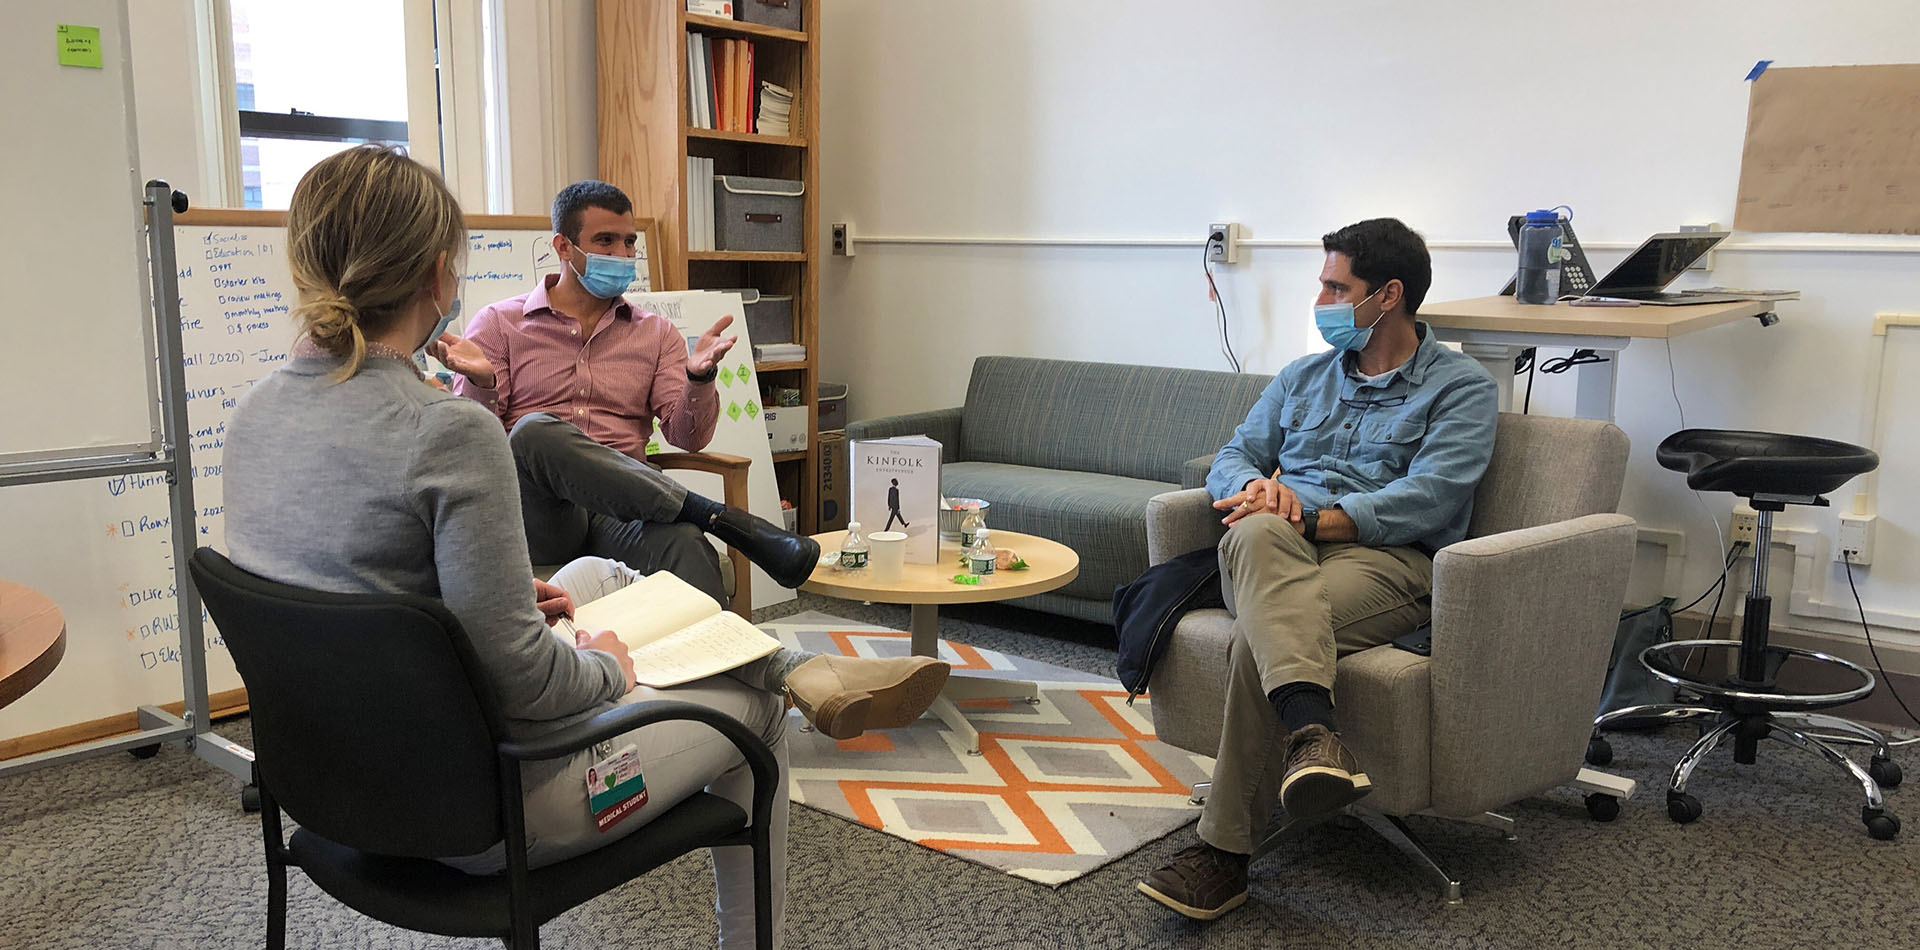 a group of researchers having a discussion